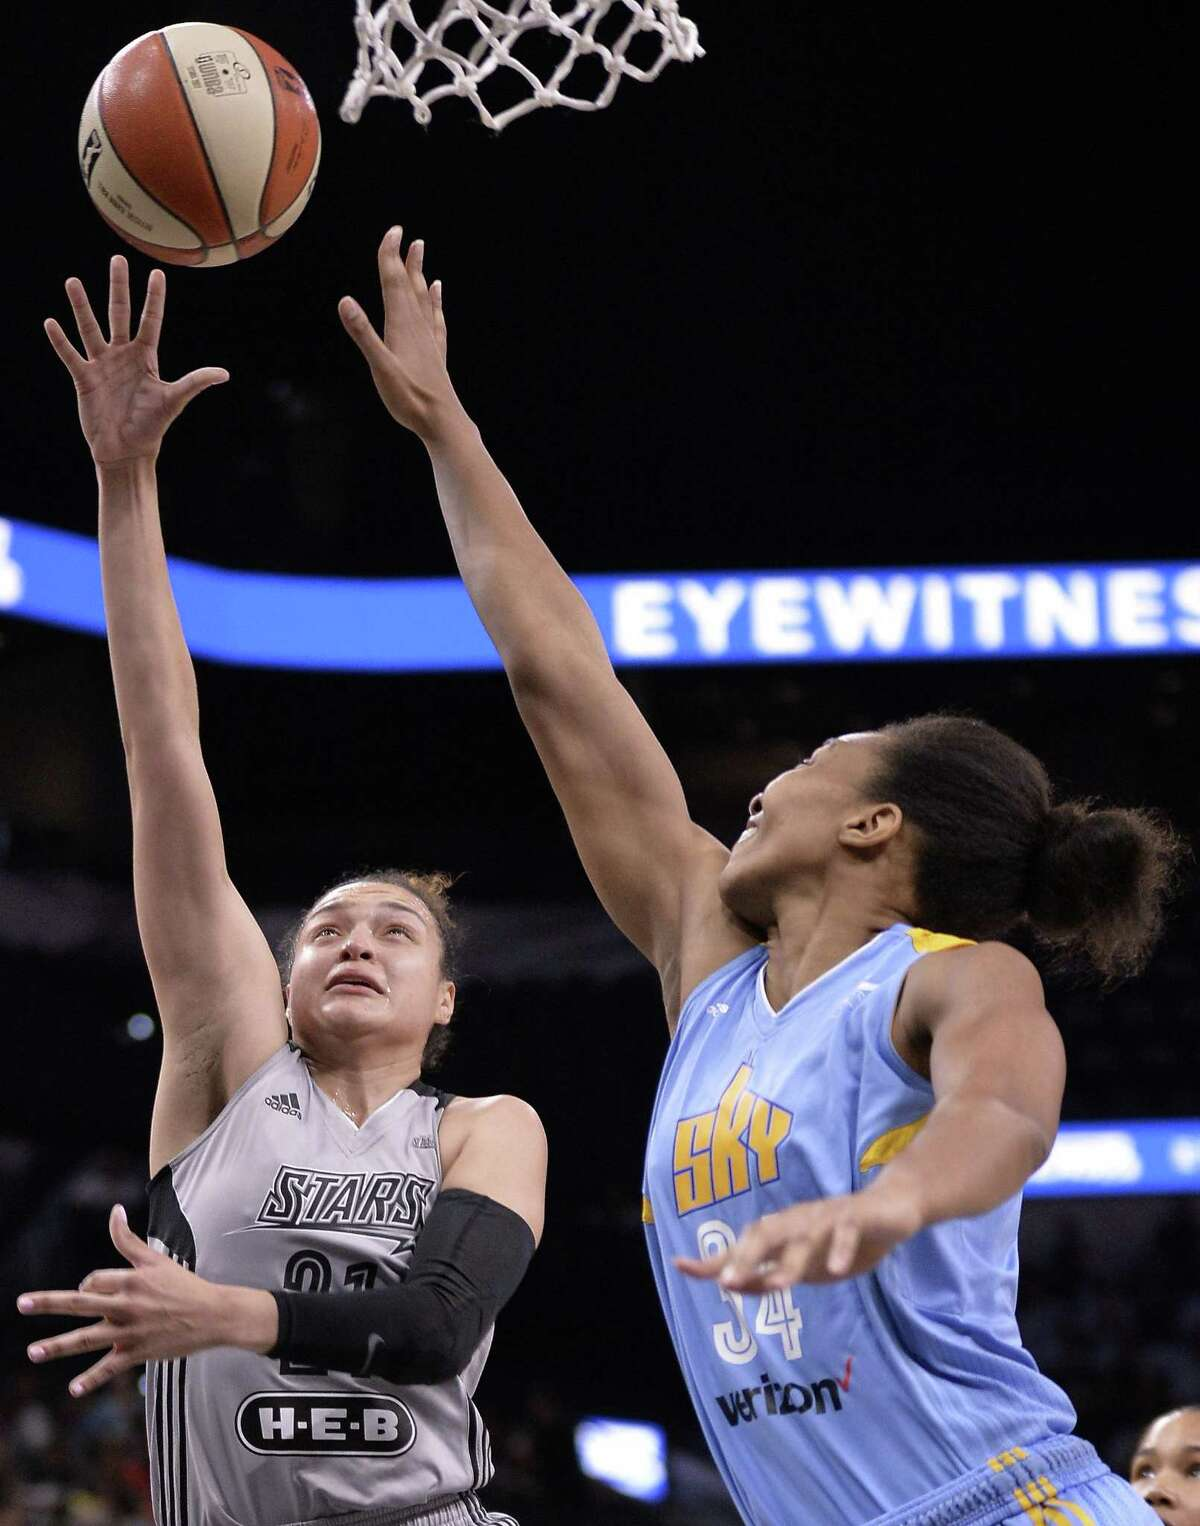 San Antonio Stars' Kayla McBride, left, shoots against Chicago Sky's Imani Boyette during the first half of a WNBA basketball game, Friday, June 30, 2017, in San Antonio. (Darren Abate/For the Express-News)